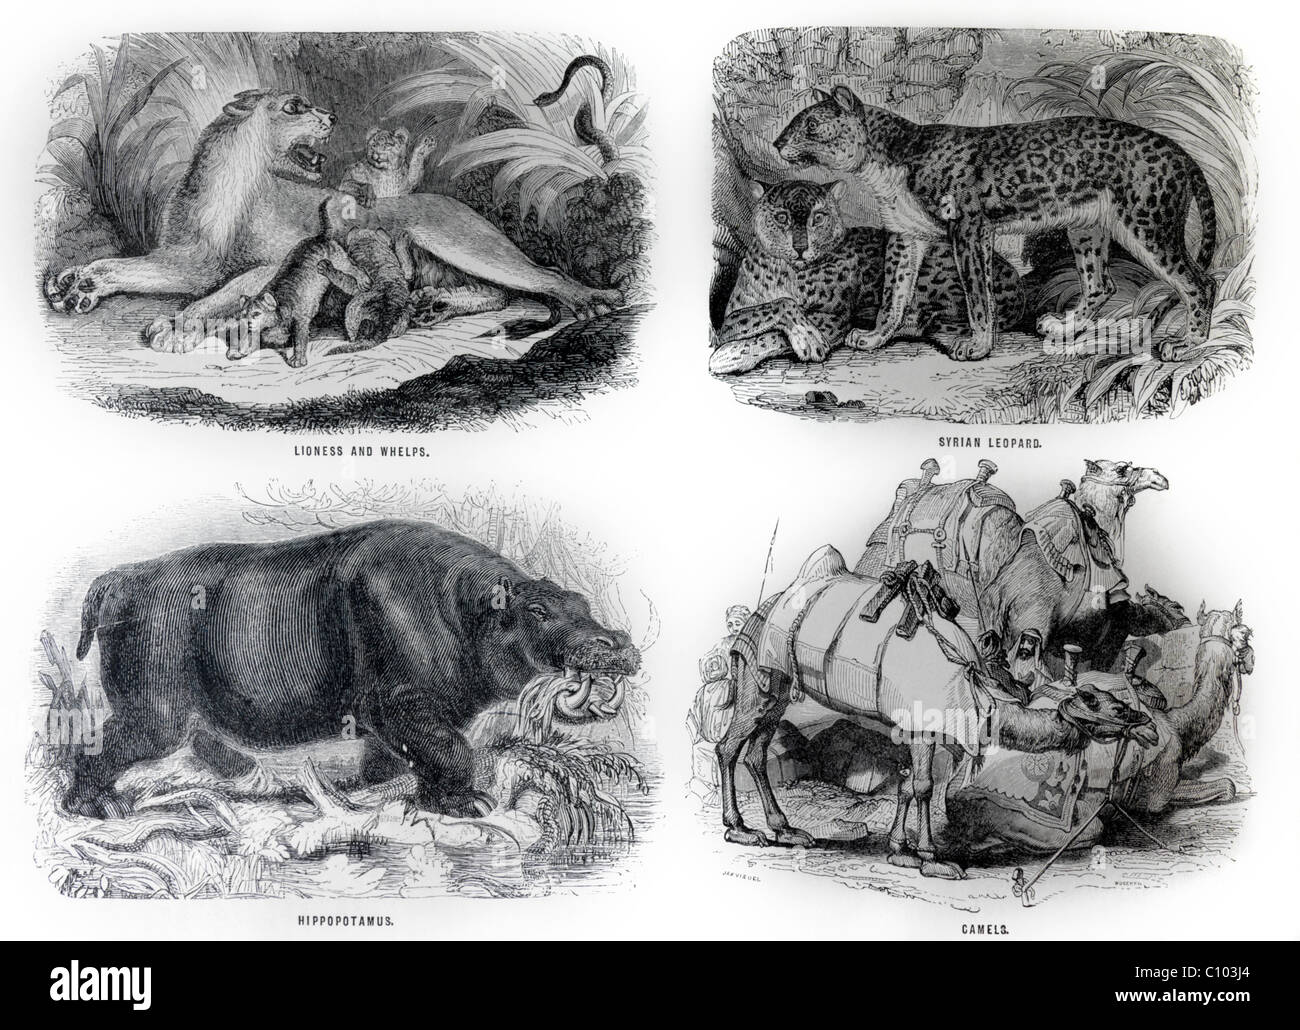 Bible Illustrations Of Animals Lioness and Cubs, Syrian Leopard